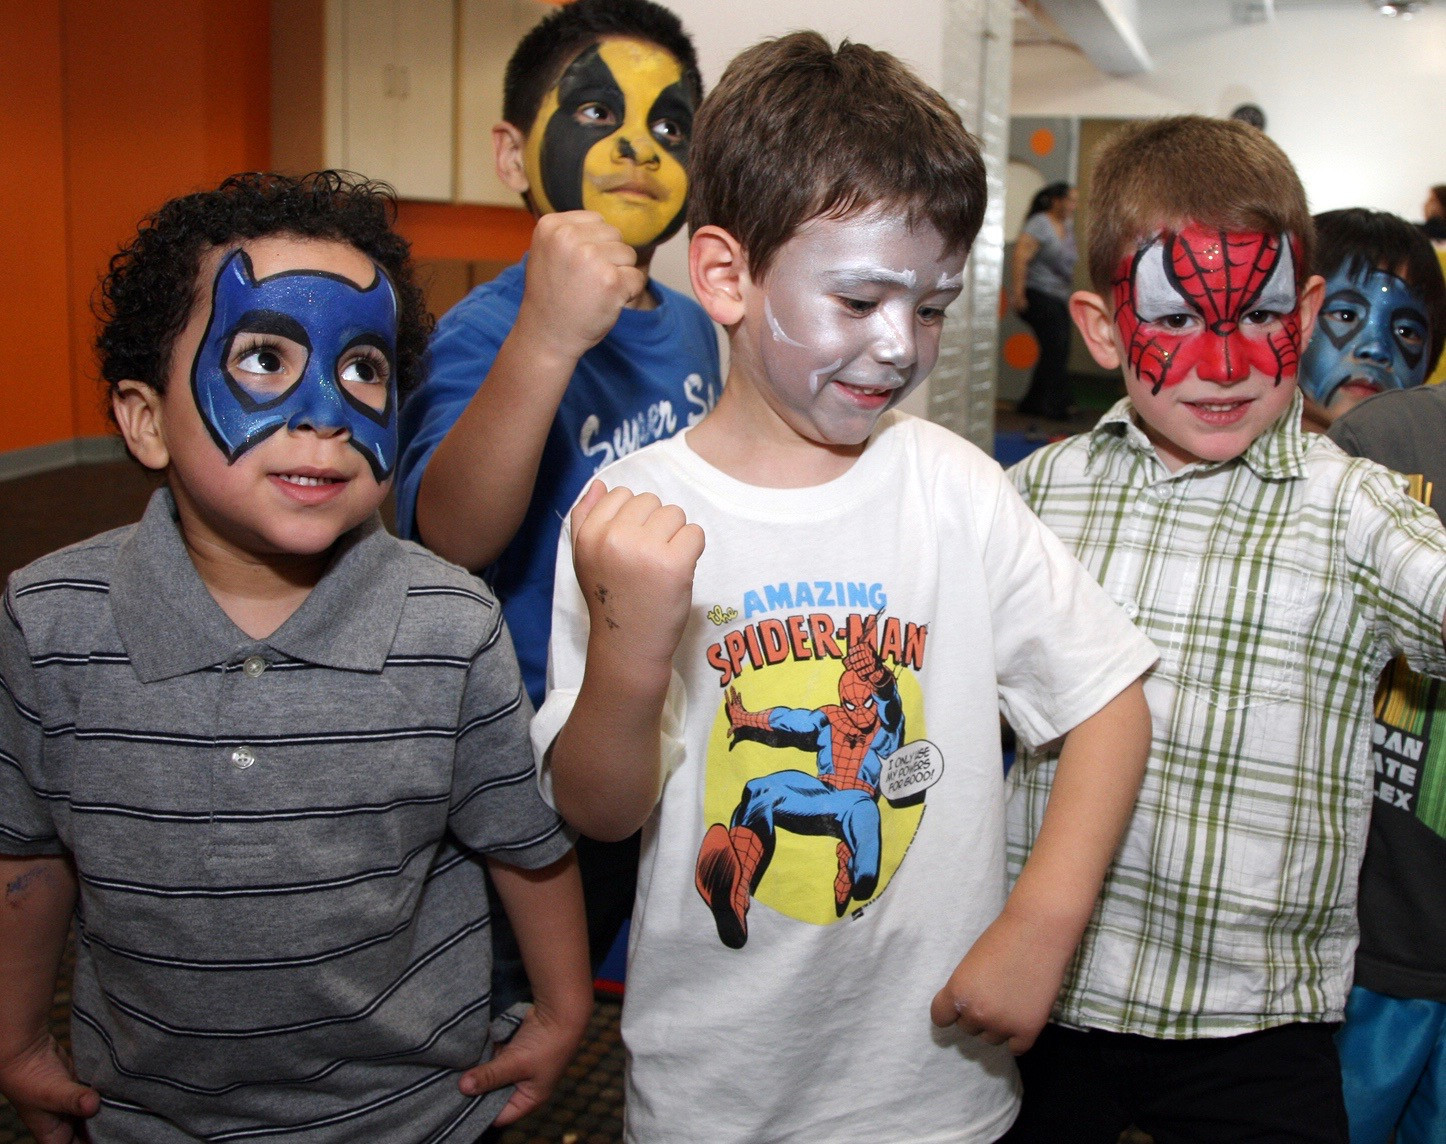 Kids Birthday Party South Jersey  Best NJ Birthday Party Places for Superheroes and